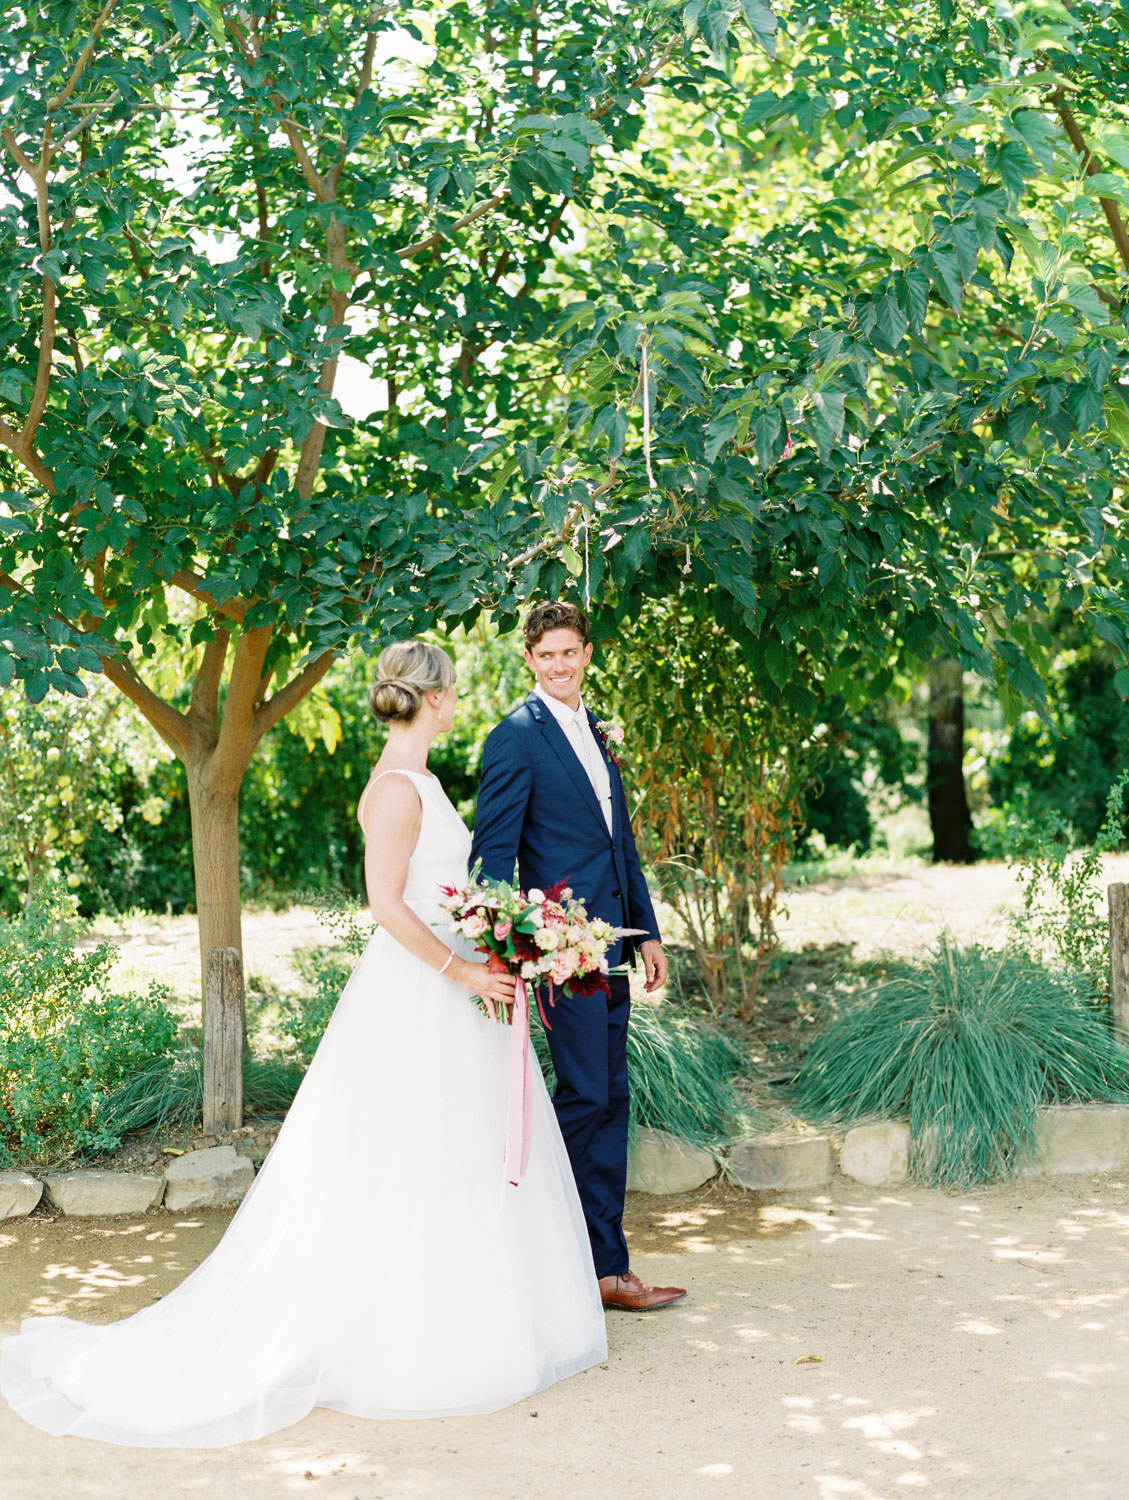 Bride in a classic Mikaella Bridal gown walking with the groom in a navy linen suit. Bridal bouquet with ivory, peach, wine, blush flowers and mauve, wine, and blush ribbons. Full Belly Farm on Martha Stewart Weddings by film photographer Cavin Elizabeth Photography